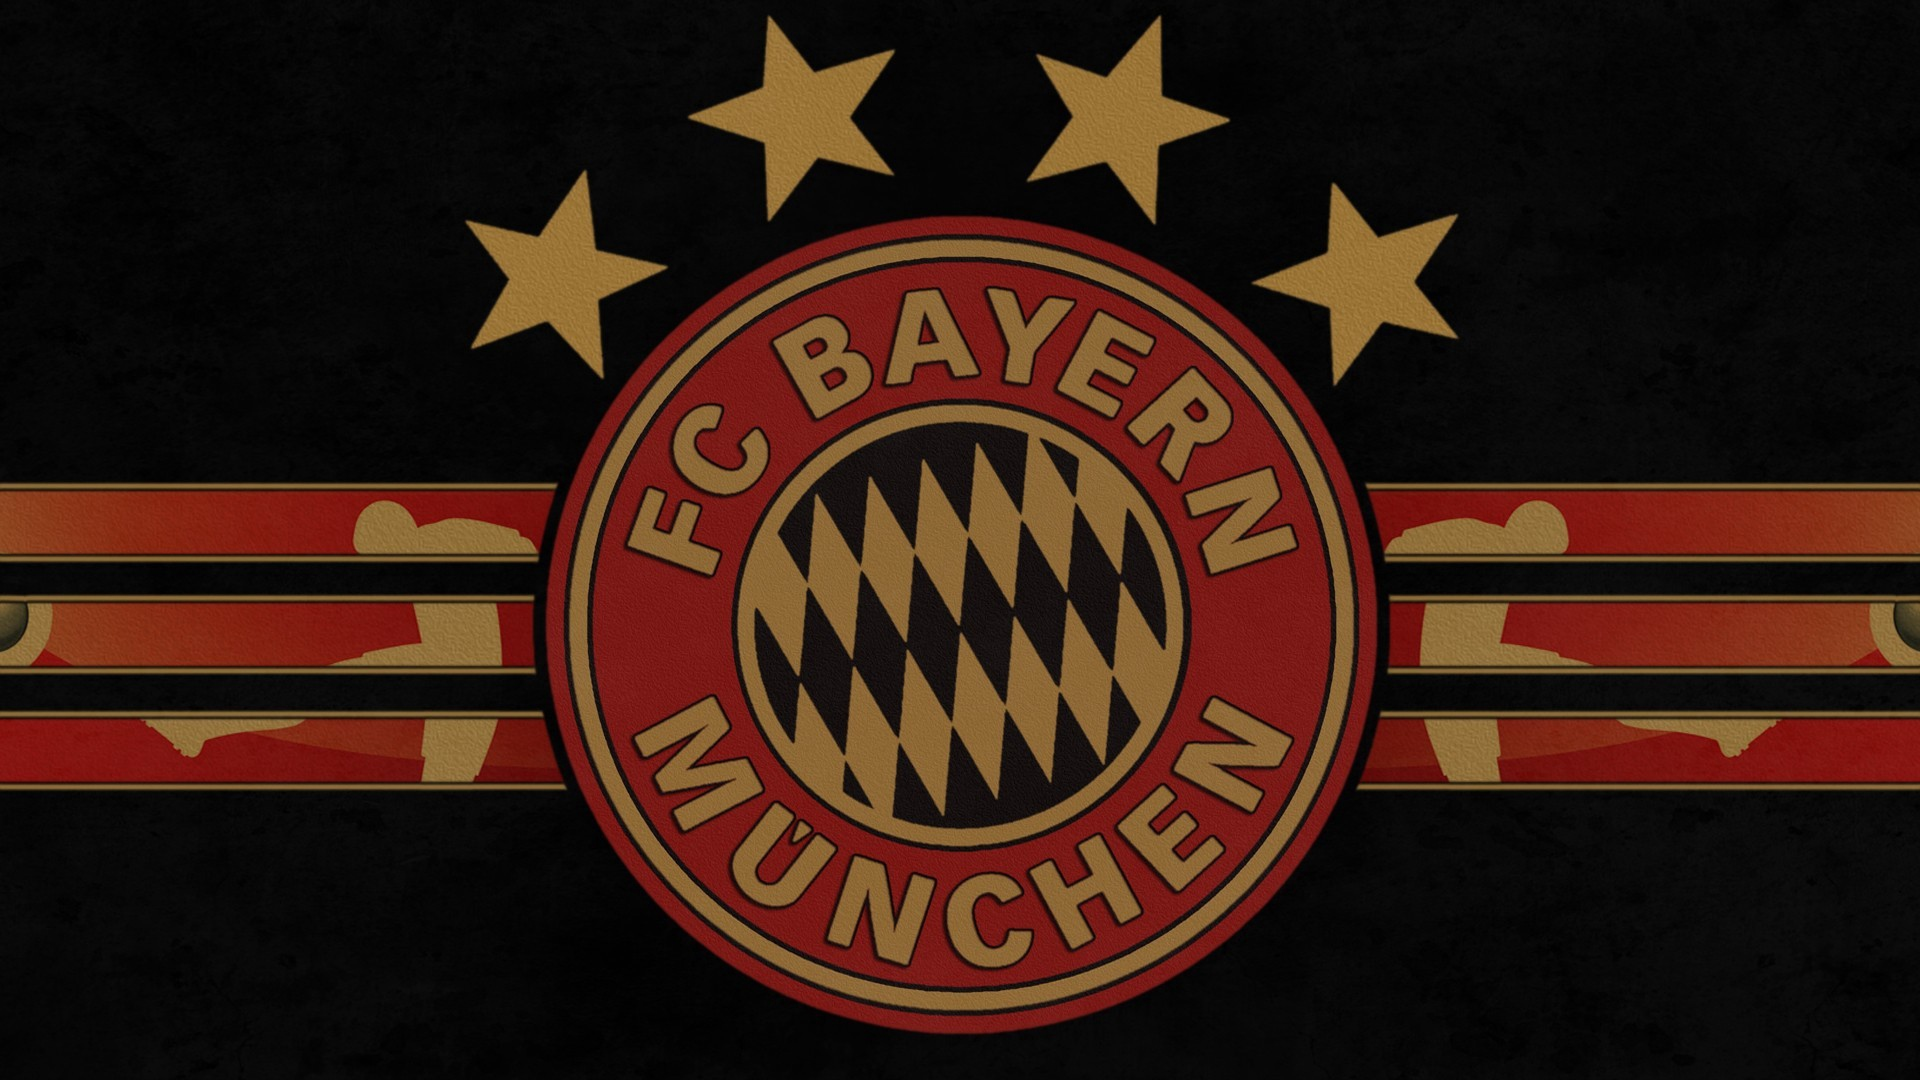 sport fc bayern munchen germany club football mascot x